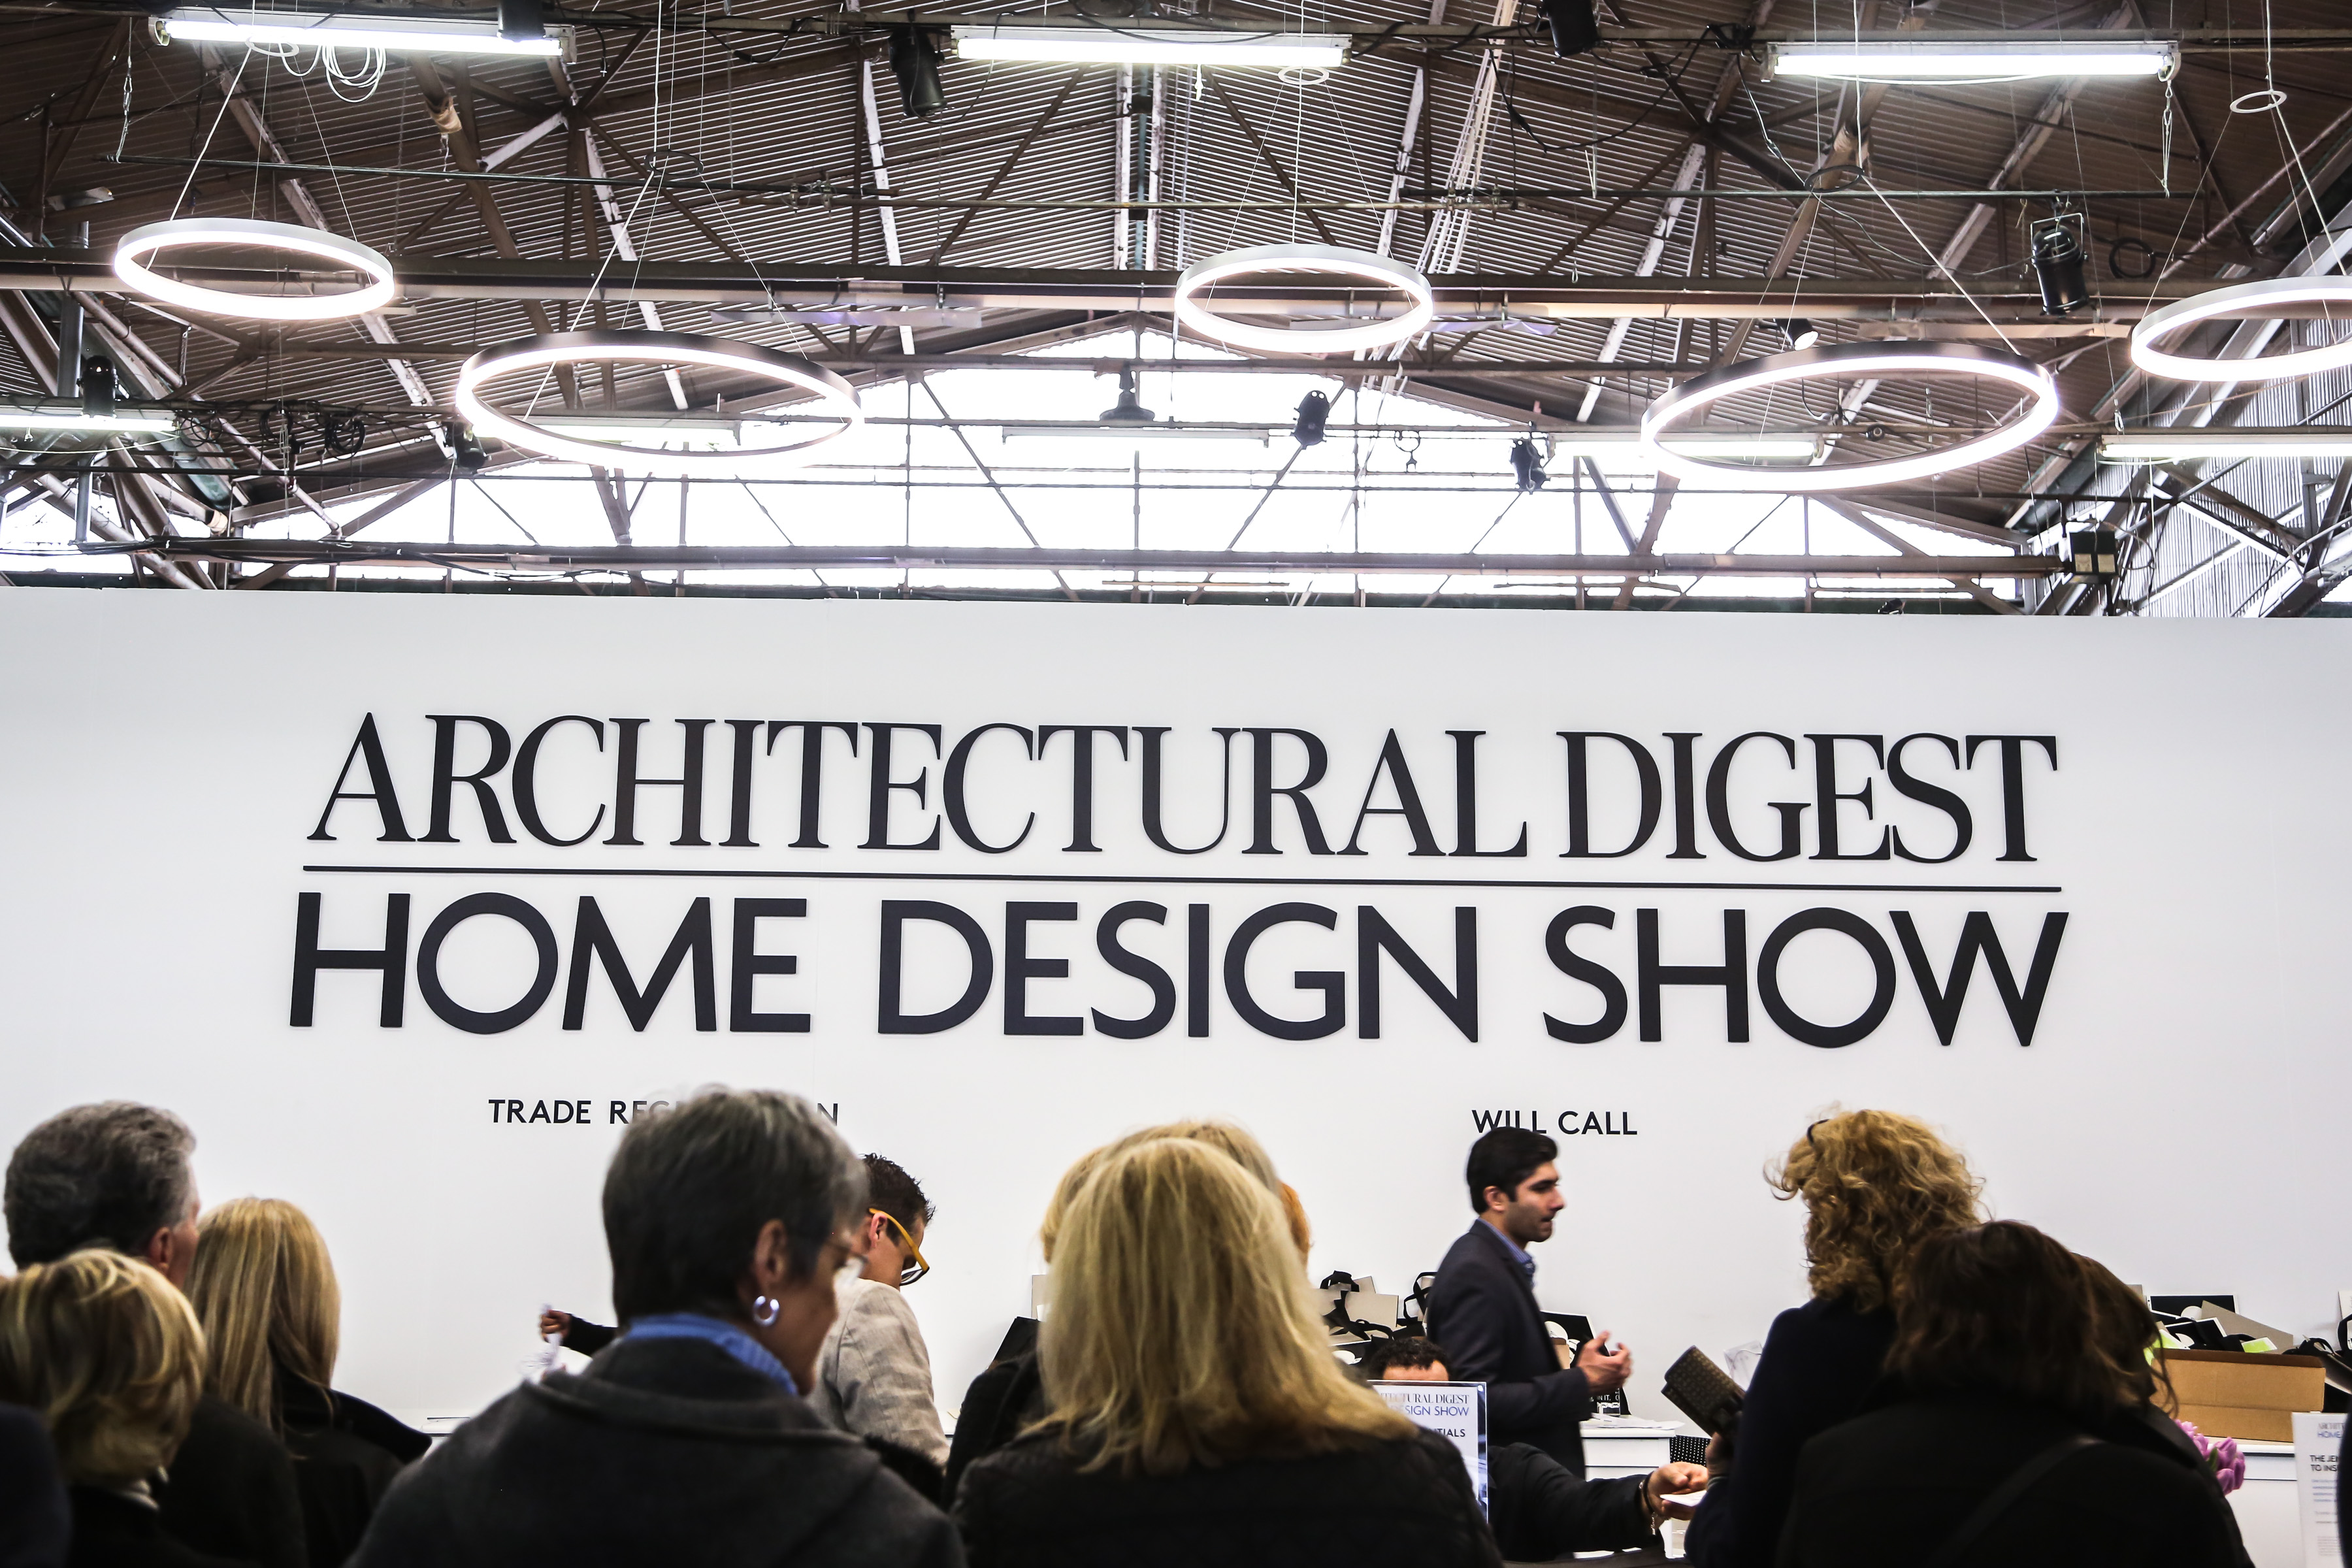 Architectural Digest Home Design Show 2014